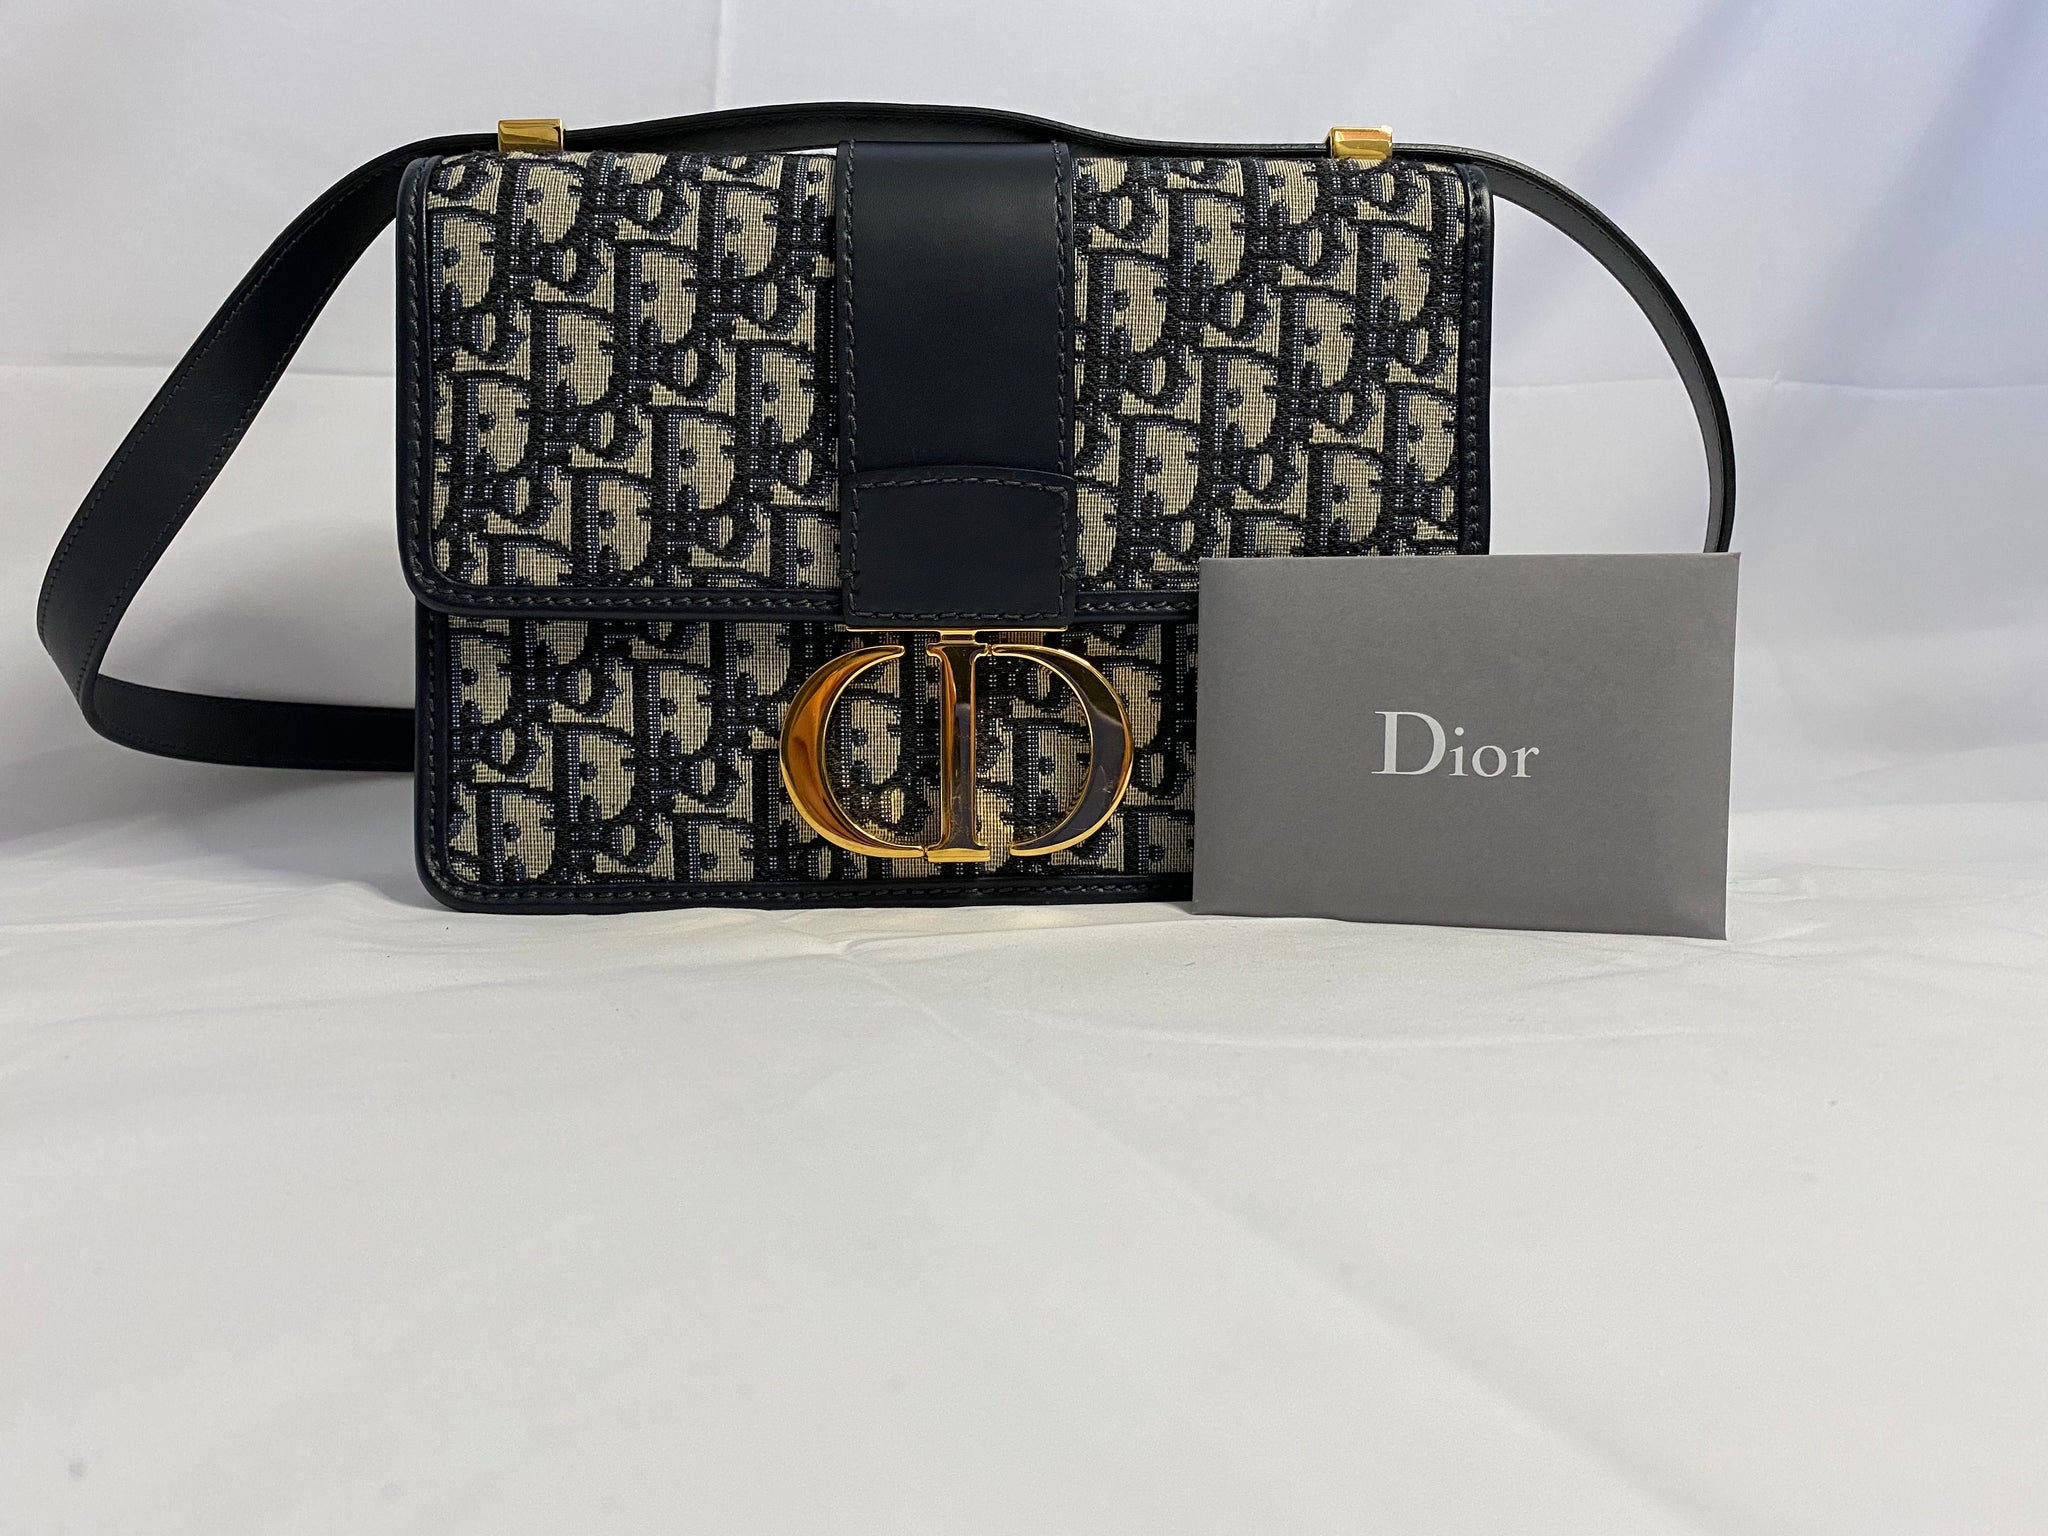 DIOR 30 MONTAIGNE OBLIQUE BAG - BLUE JACQUARD CANVAS